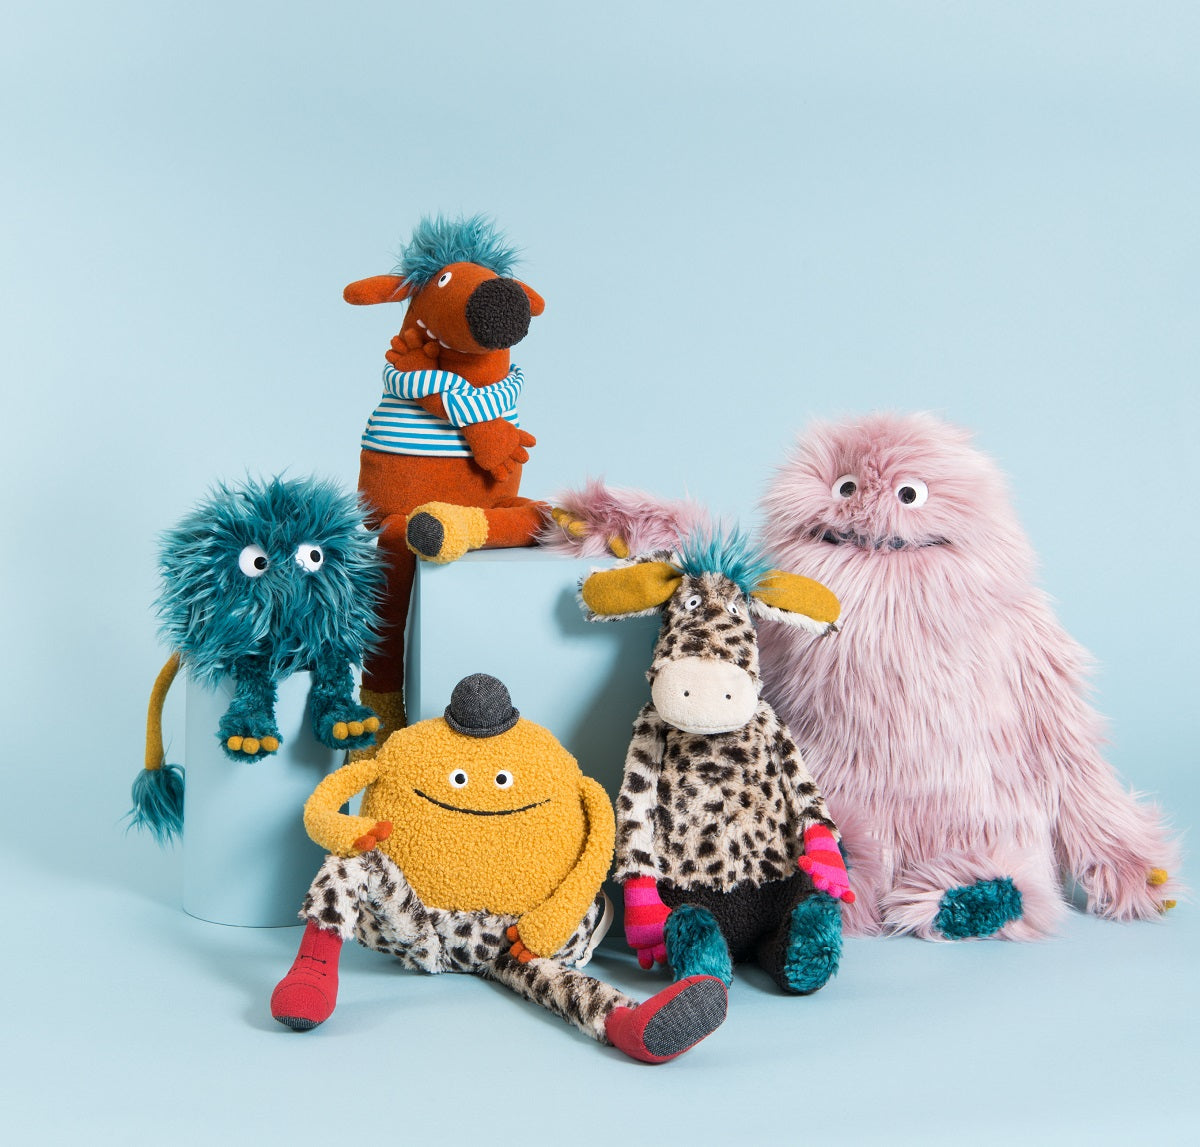 In a blue room, a bunch of colourful plush characters